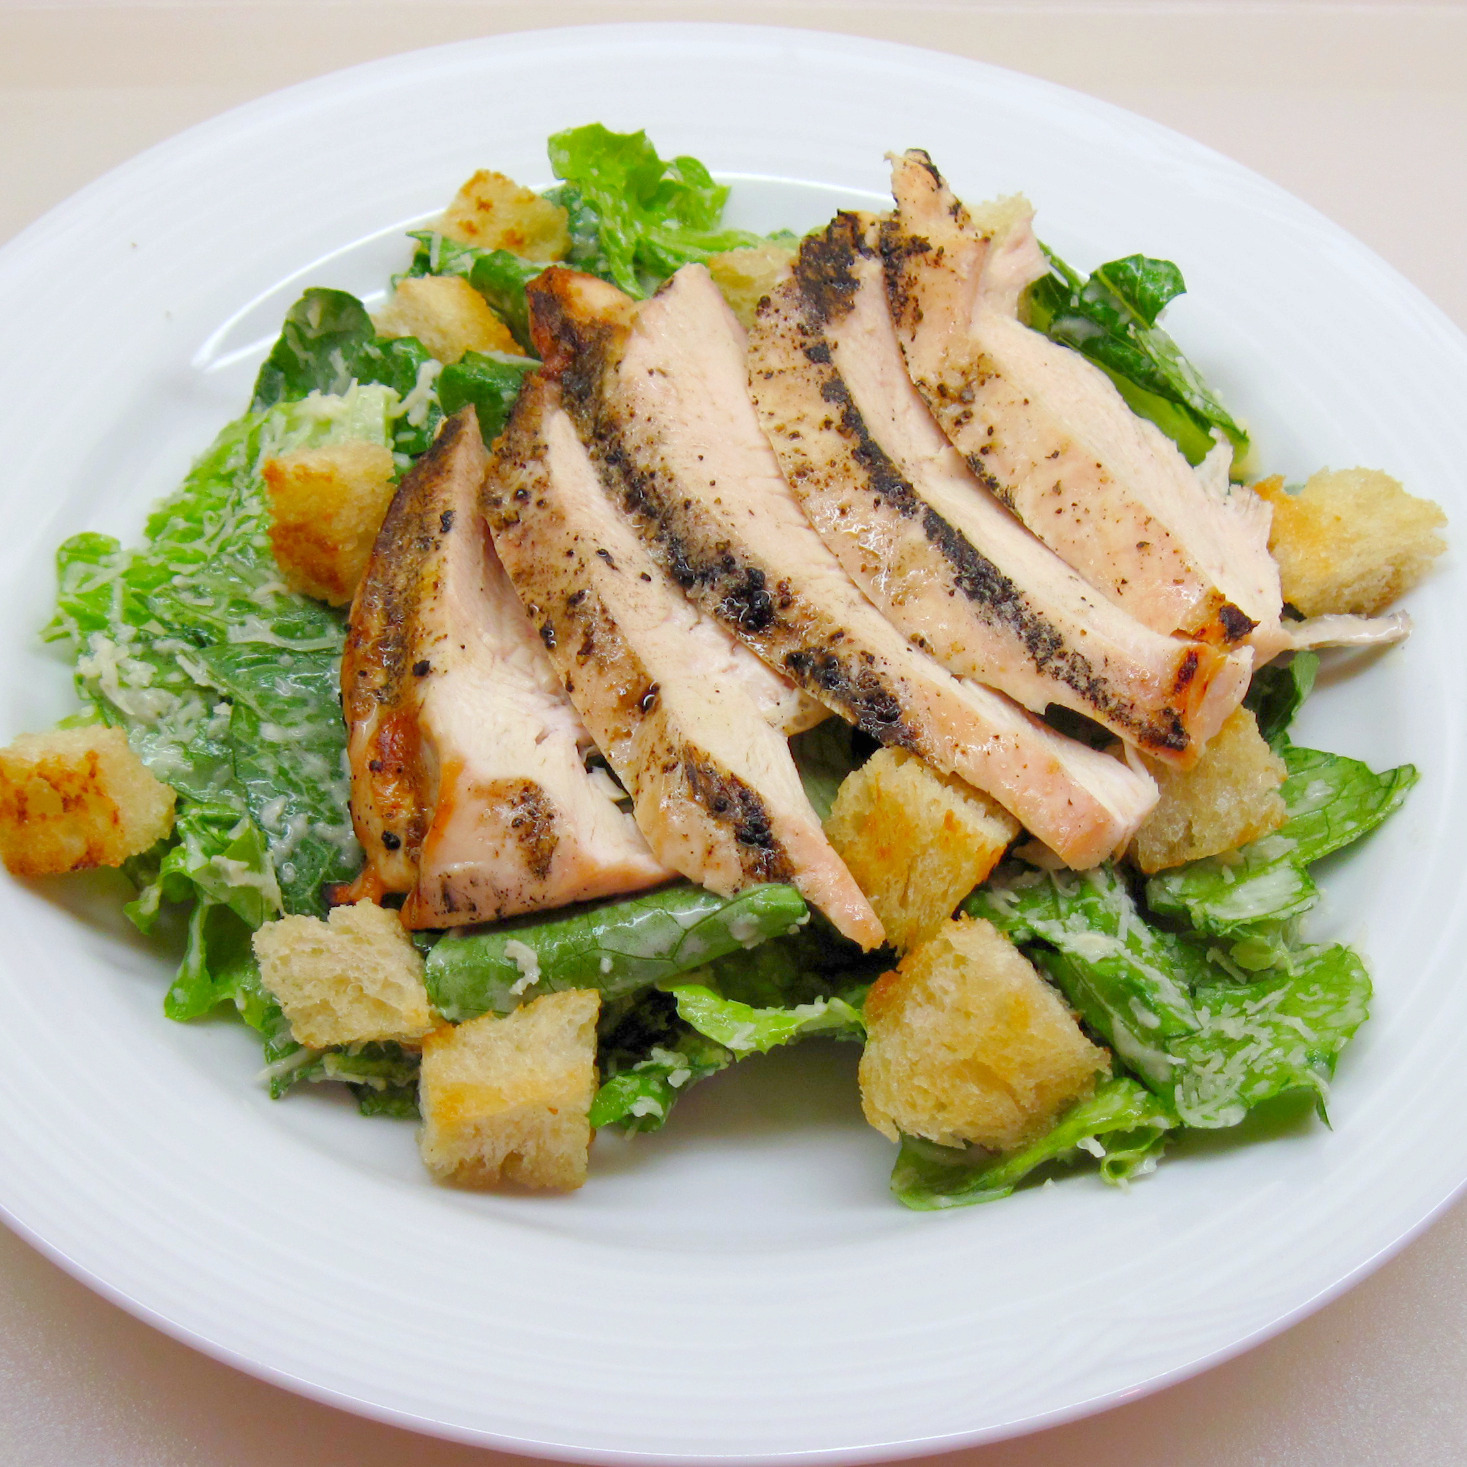 Caesar salad 4 with grilled chicken